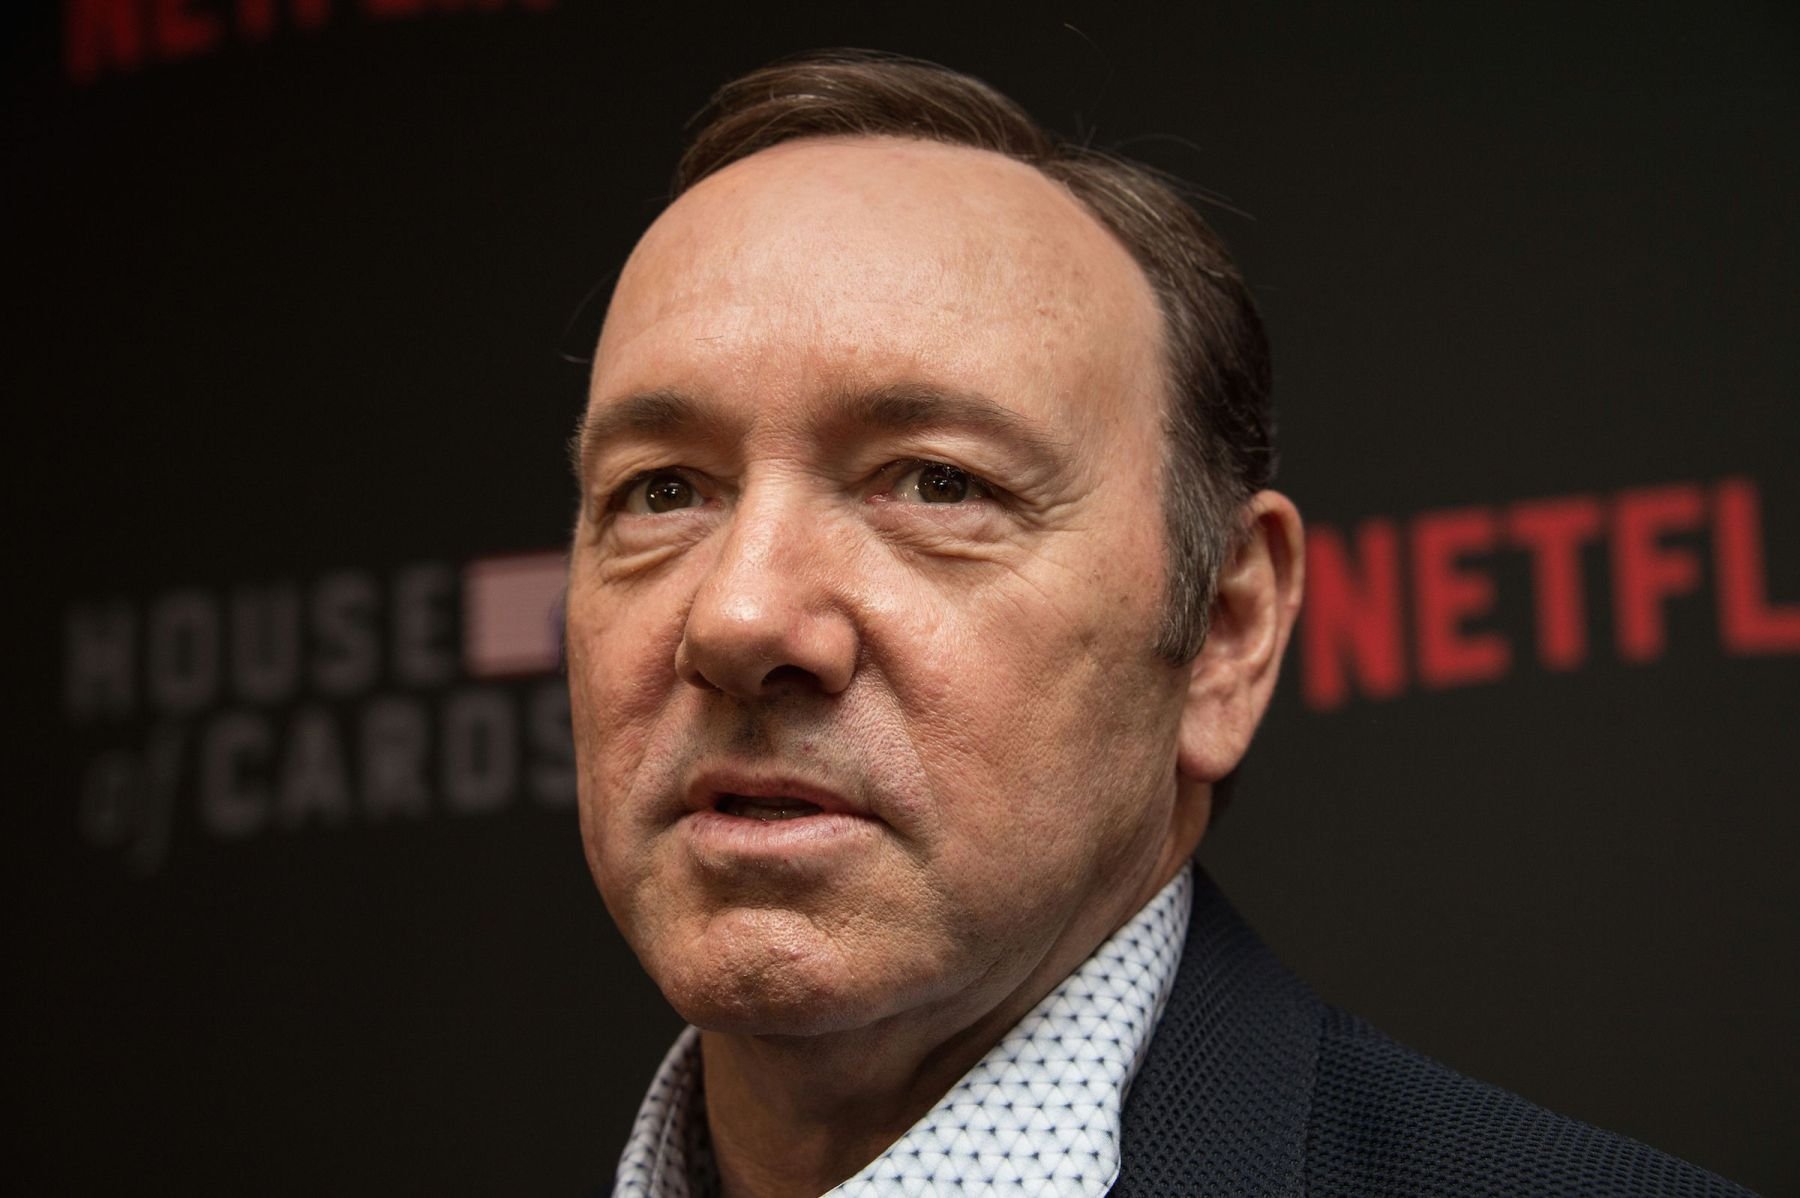 """Actor Kevin Spacey arrives at the season 4 premiere screening of the Netflix show """"House of Cards"""" in Washington, DC, on February 22, 2016. (Photo by Nicholas Kamm / AFP)        (Photo credit should read NICHOLAS KAMM/AFP/Getty Images)"""